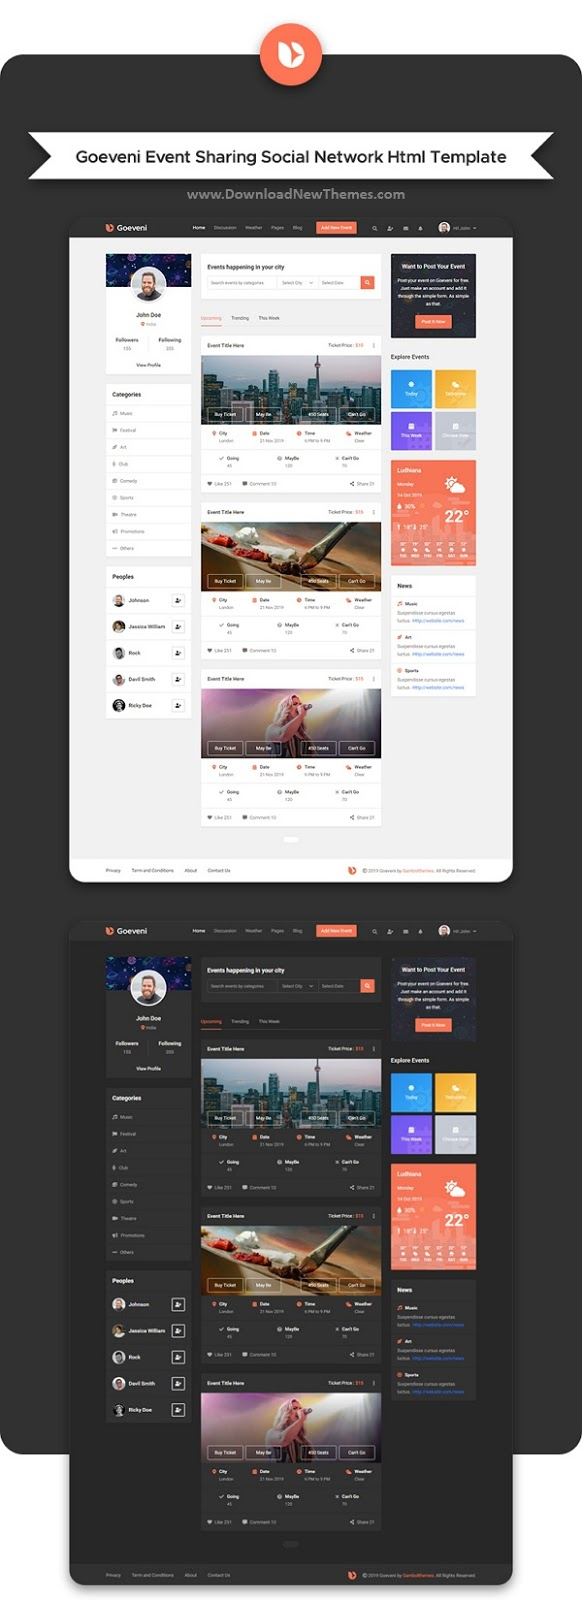 Event Sharing Social Network HTML Template